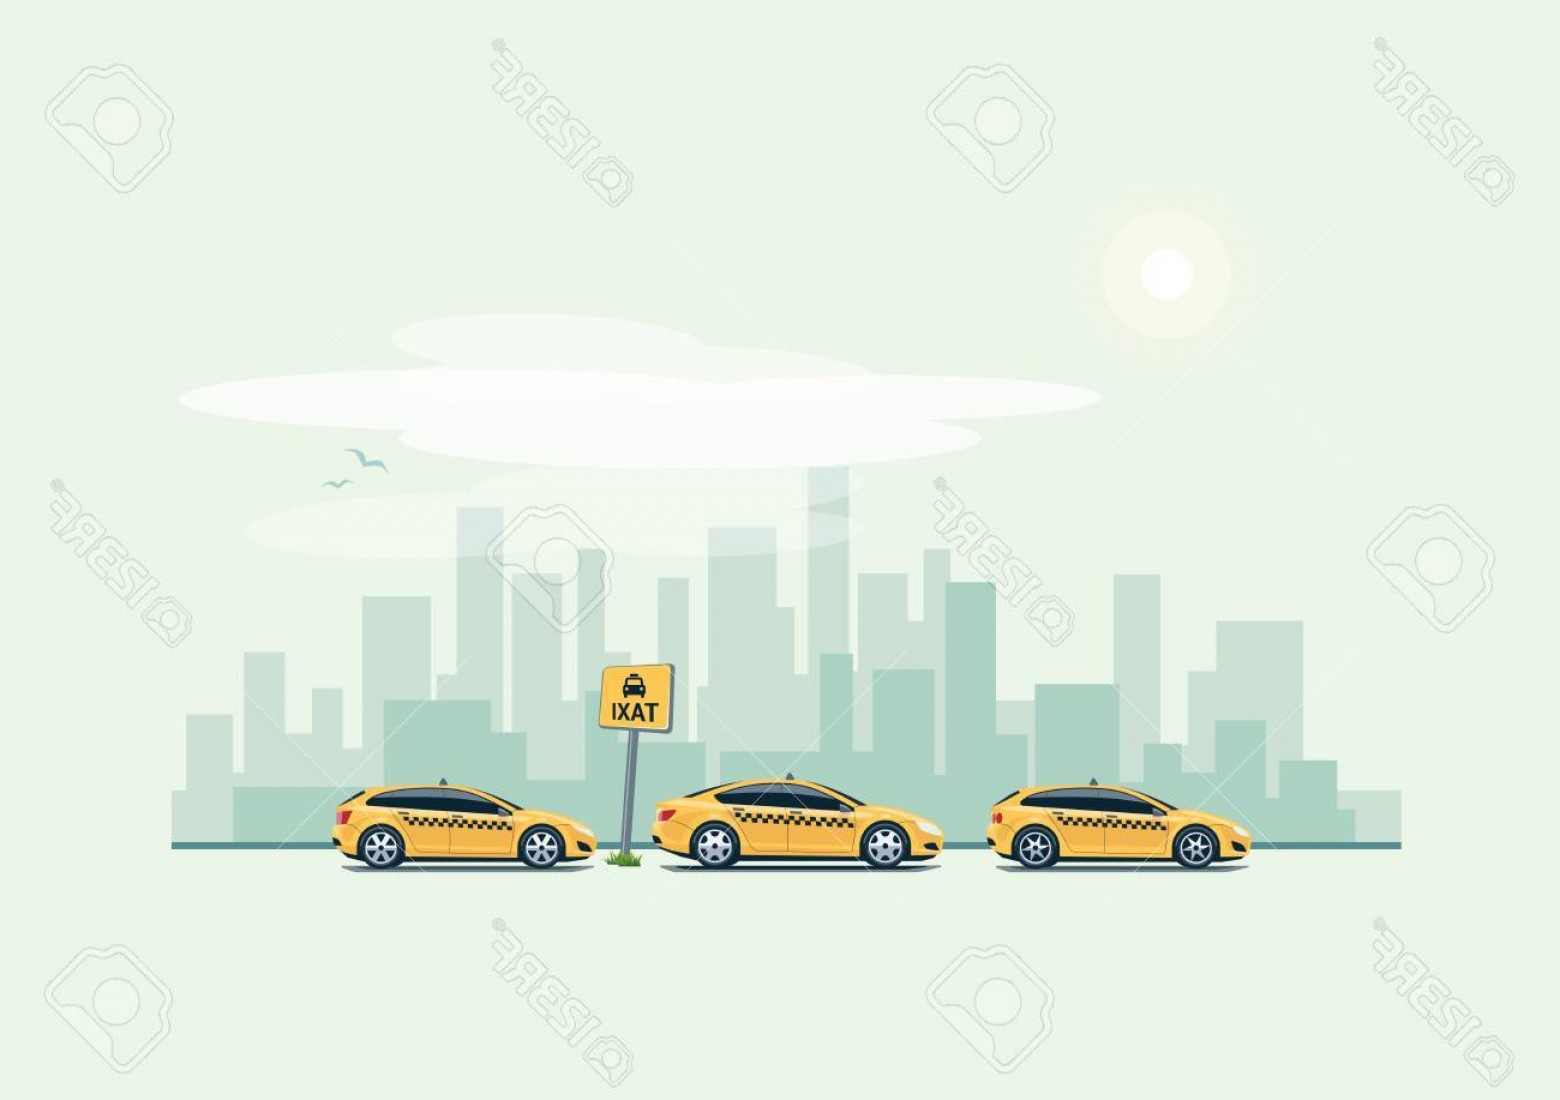 Cars Skyline Vector: Photostock Vector Vector Illustration Of Yellow Taxi Cars Parking Along The City Street In Cartoon Style Hatchback Sta